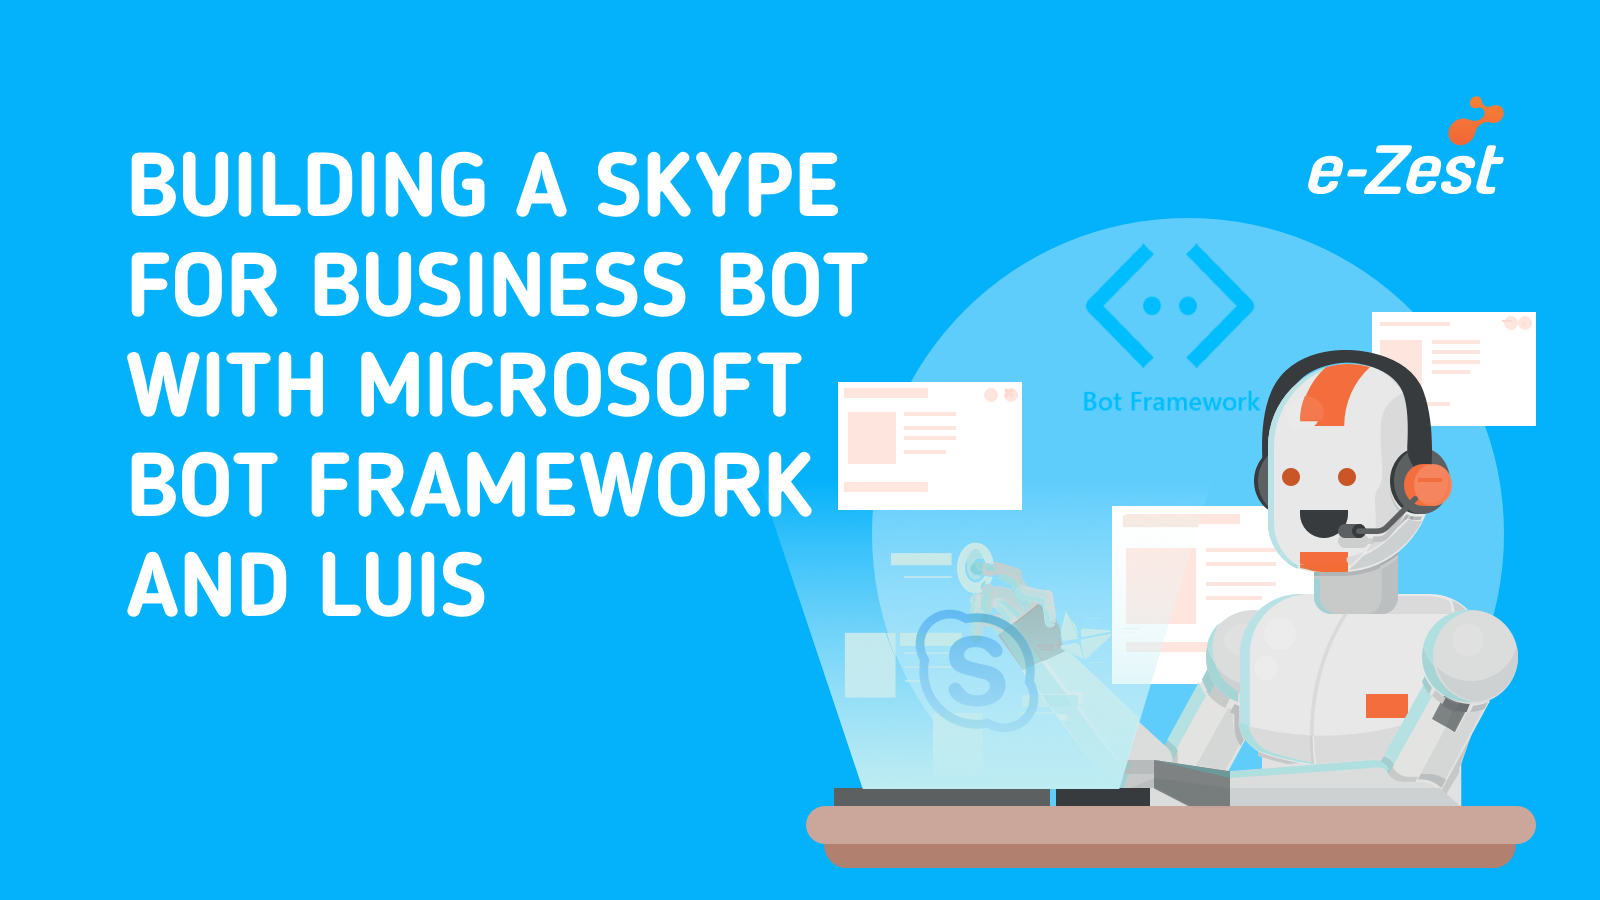 Building a Skype for Business bot with Microsoft Bot Framework and LUIS